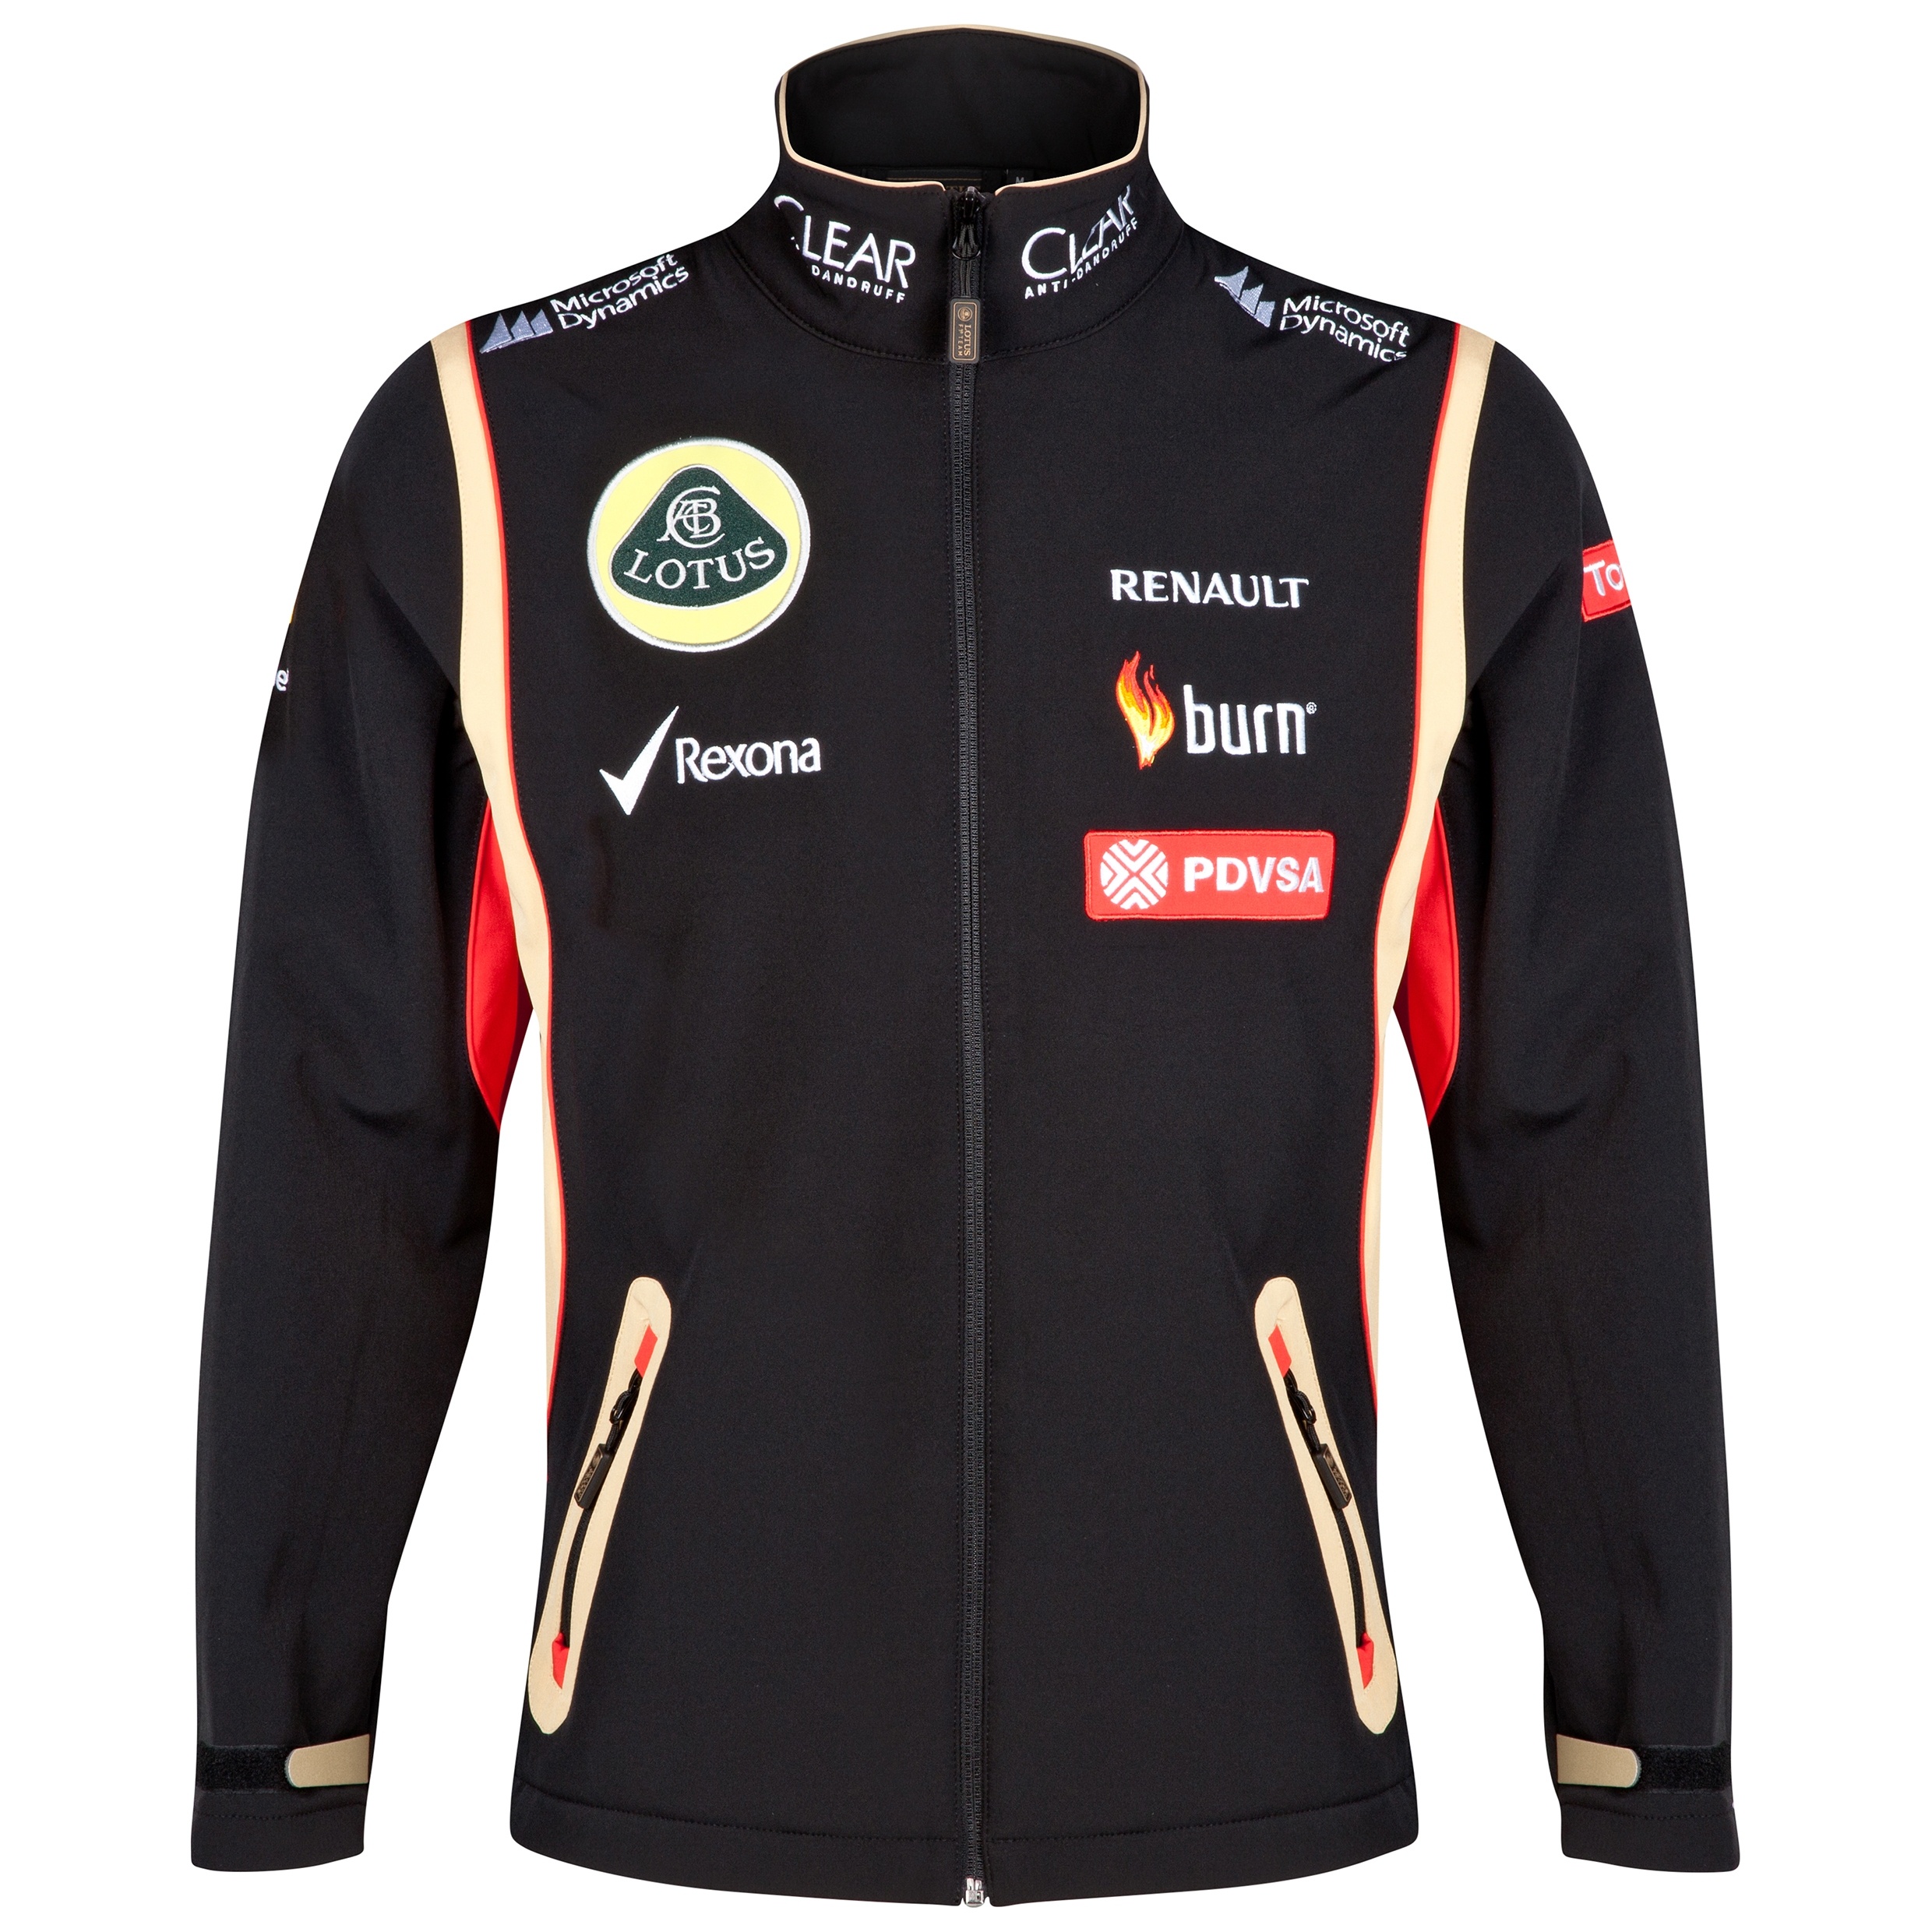 Lotus F1 Team Replica Fleece